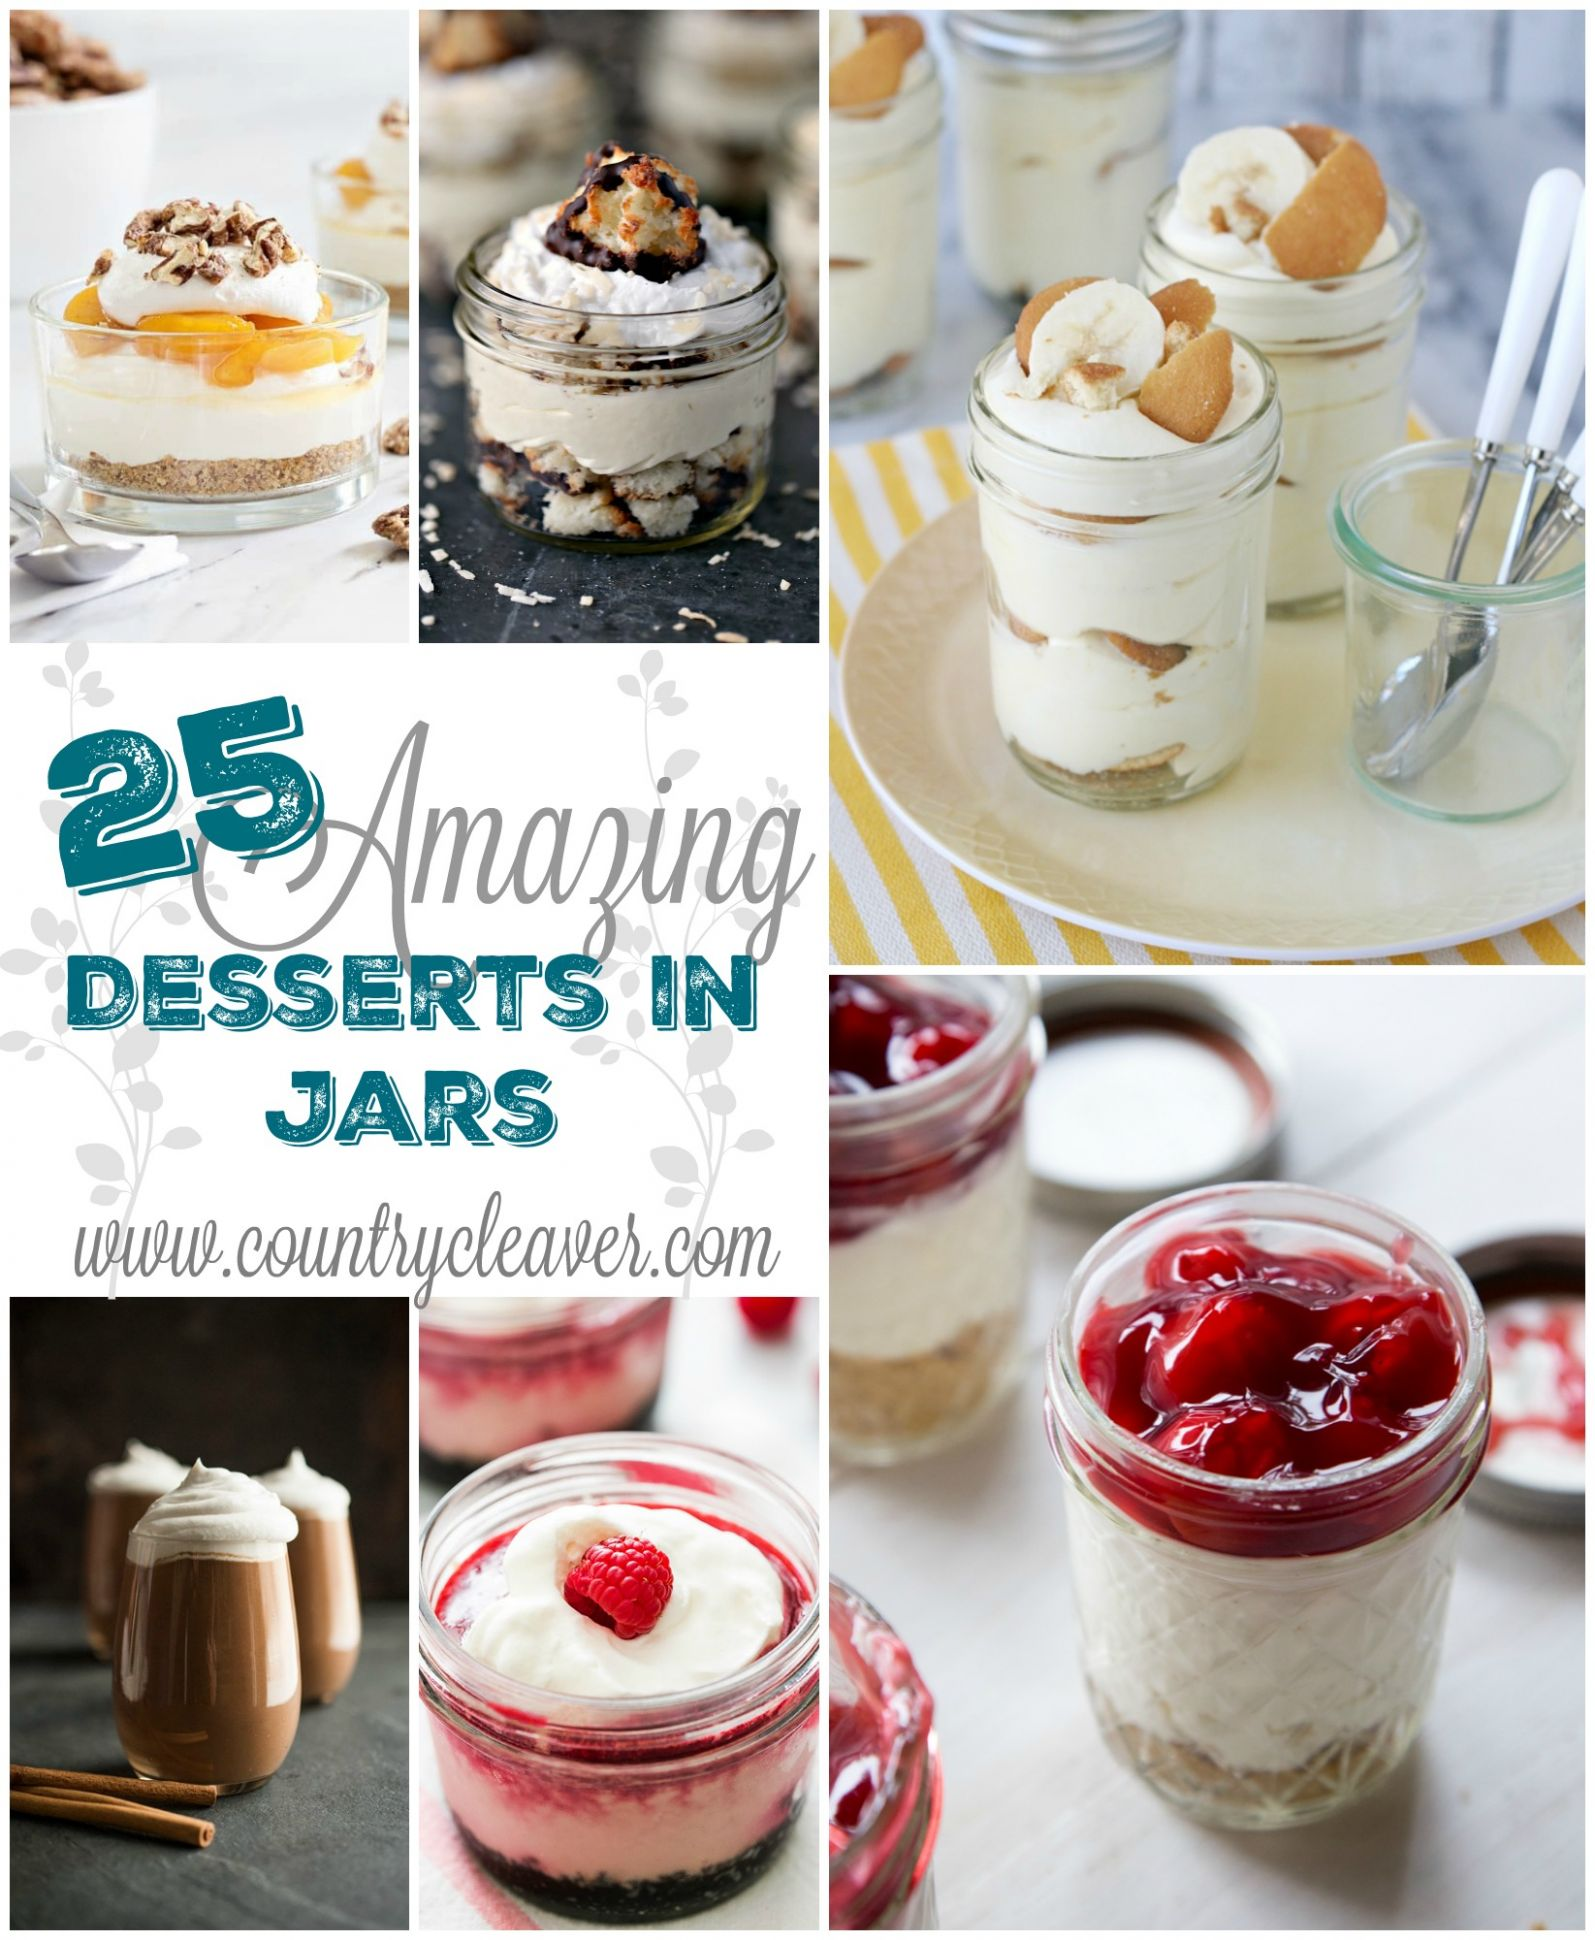 12 Amazing No Bake Desserts In Jars - Country Cleaver - Dessert Recipes Jars